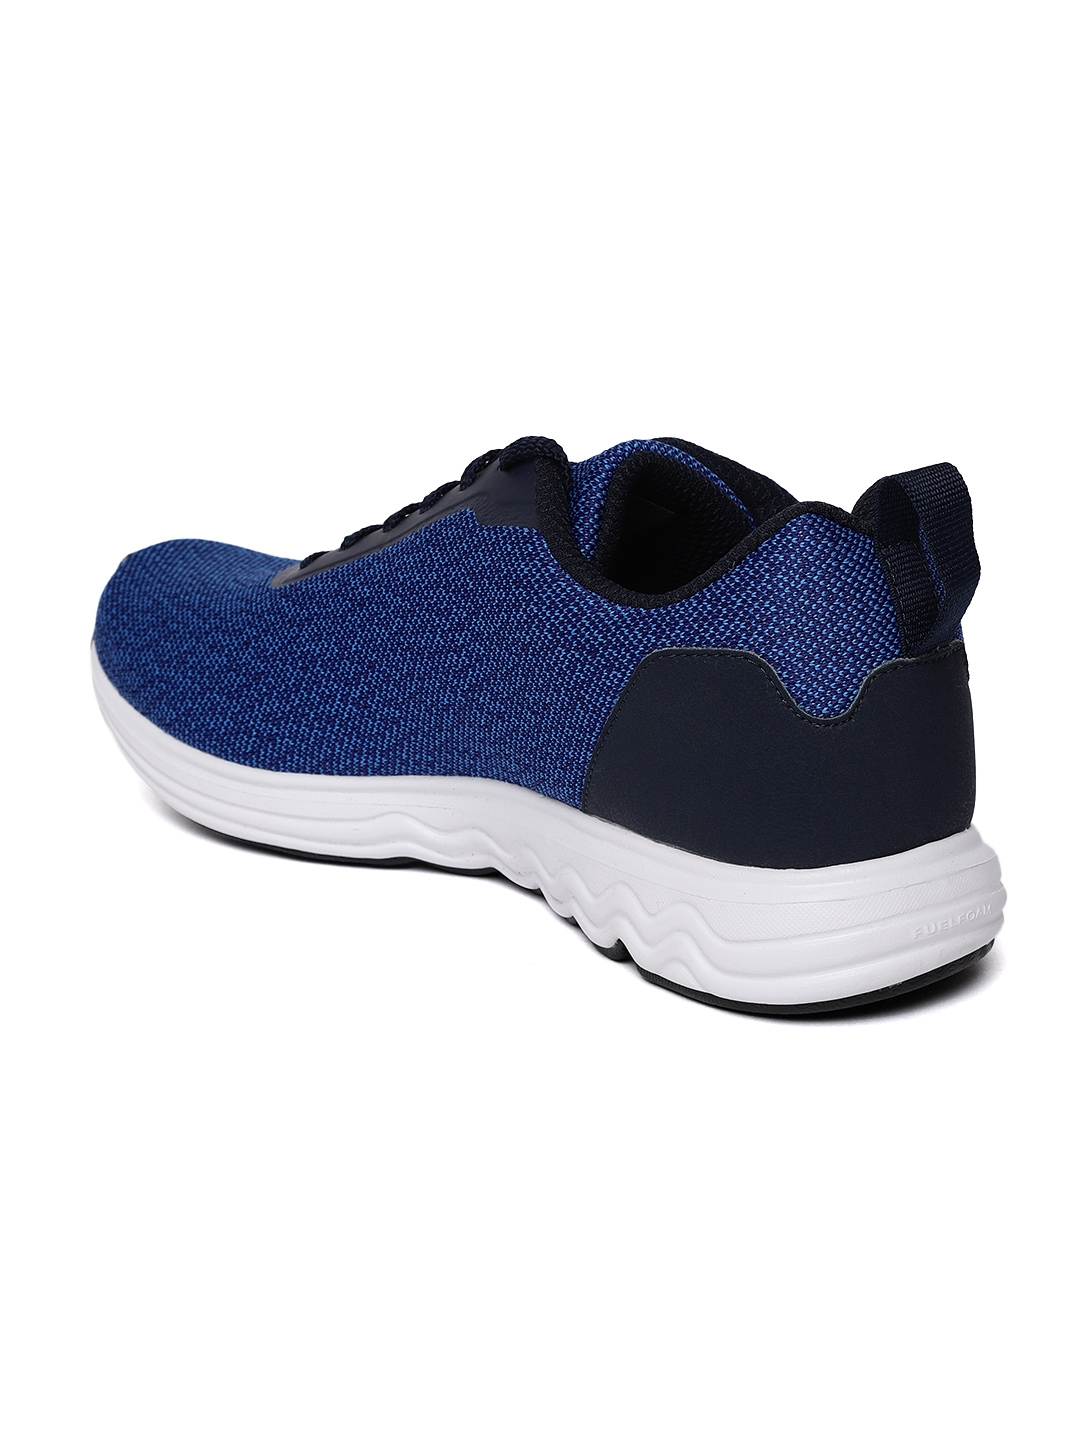 3235c0453e69db Buy Reebok Men Blue Avid LP Running Shoes - Sports Shoes for Men ...